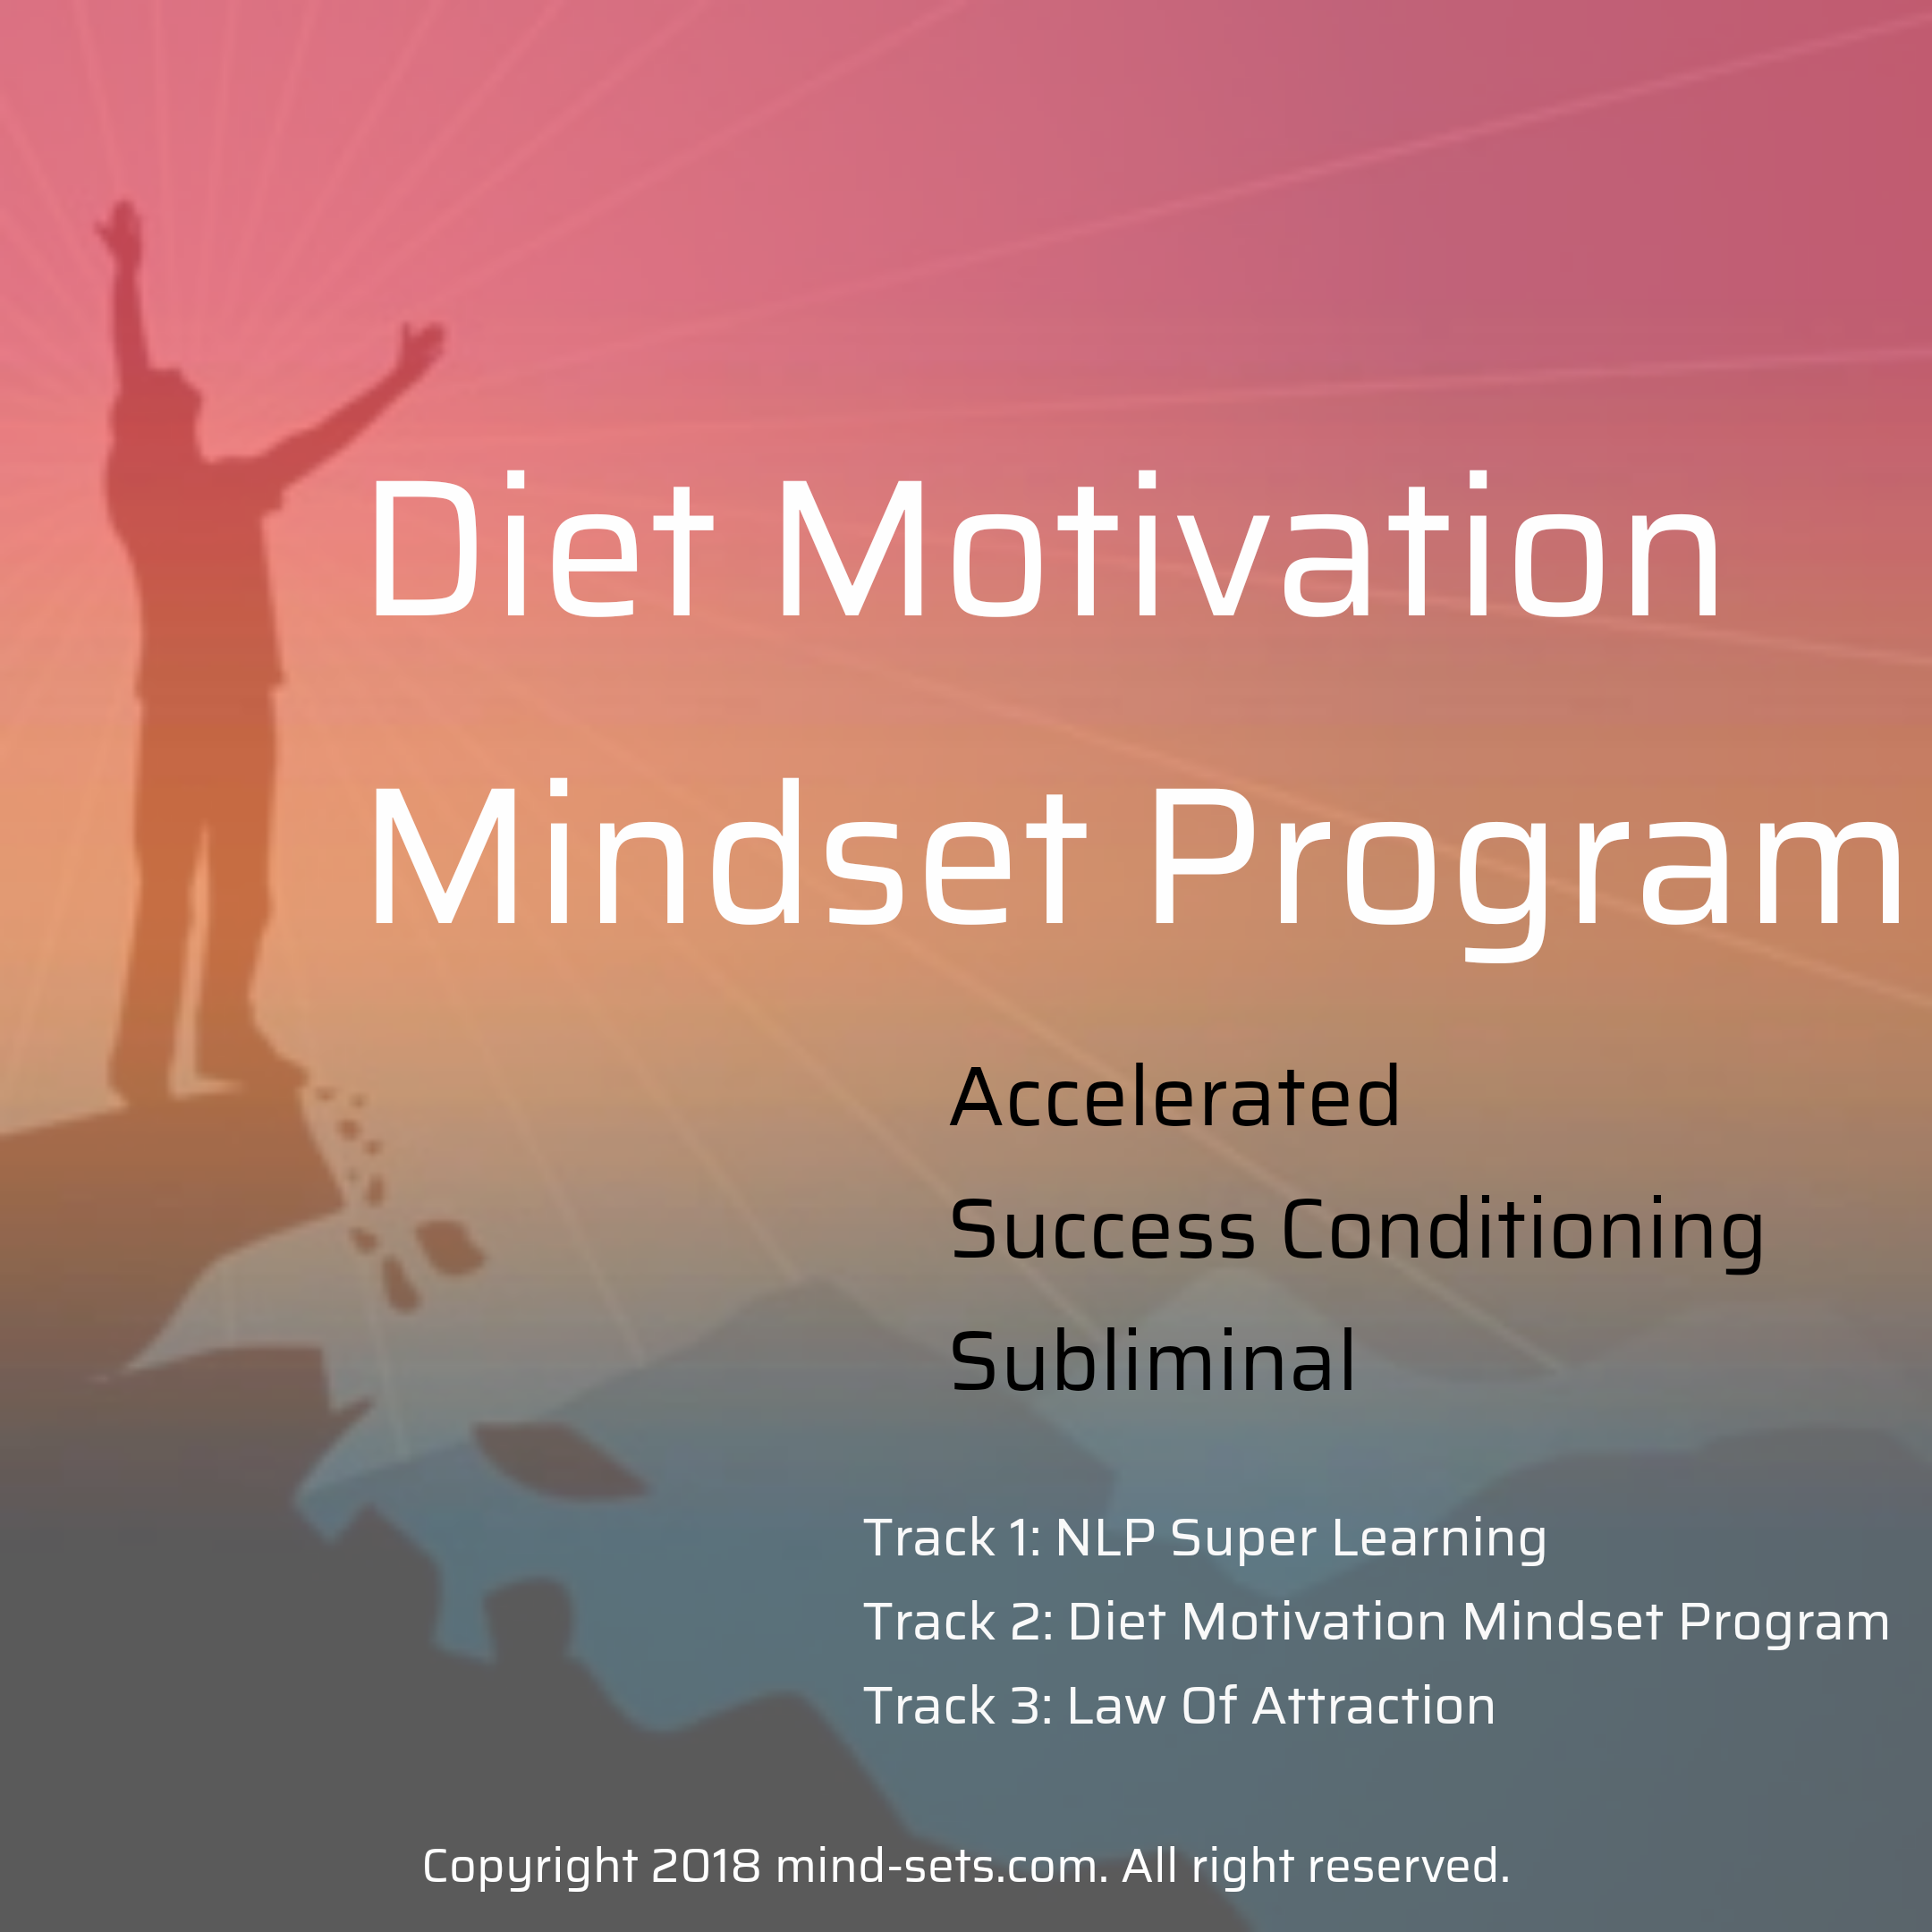 Diet Motivation Mindset Program